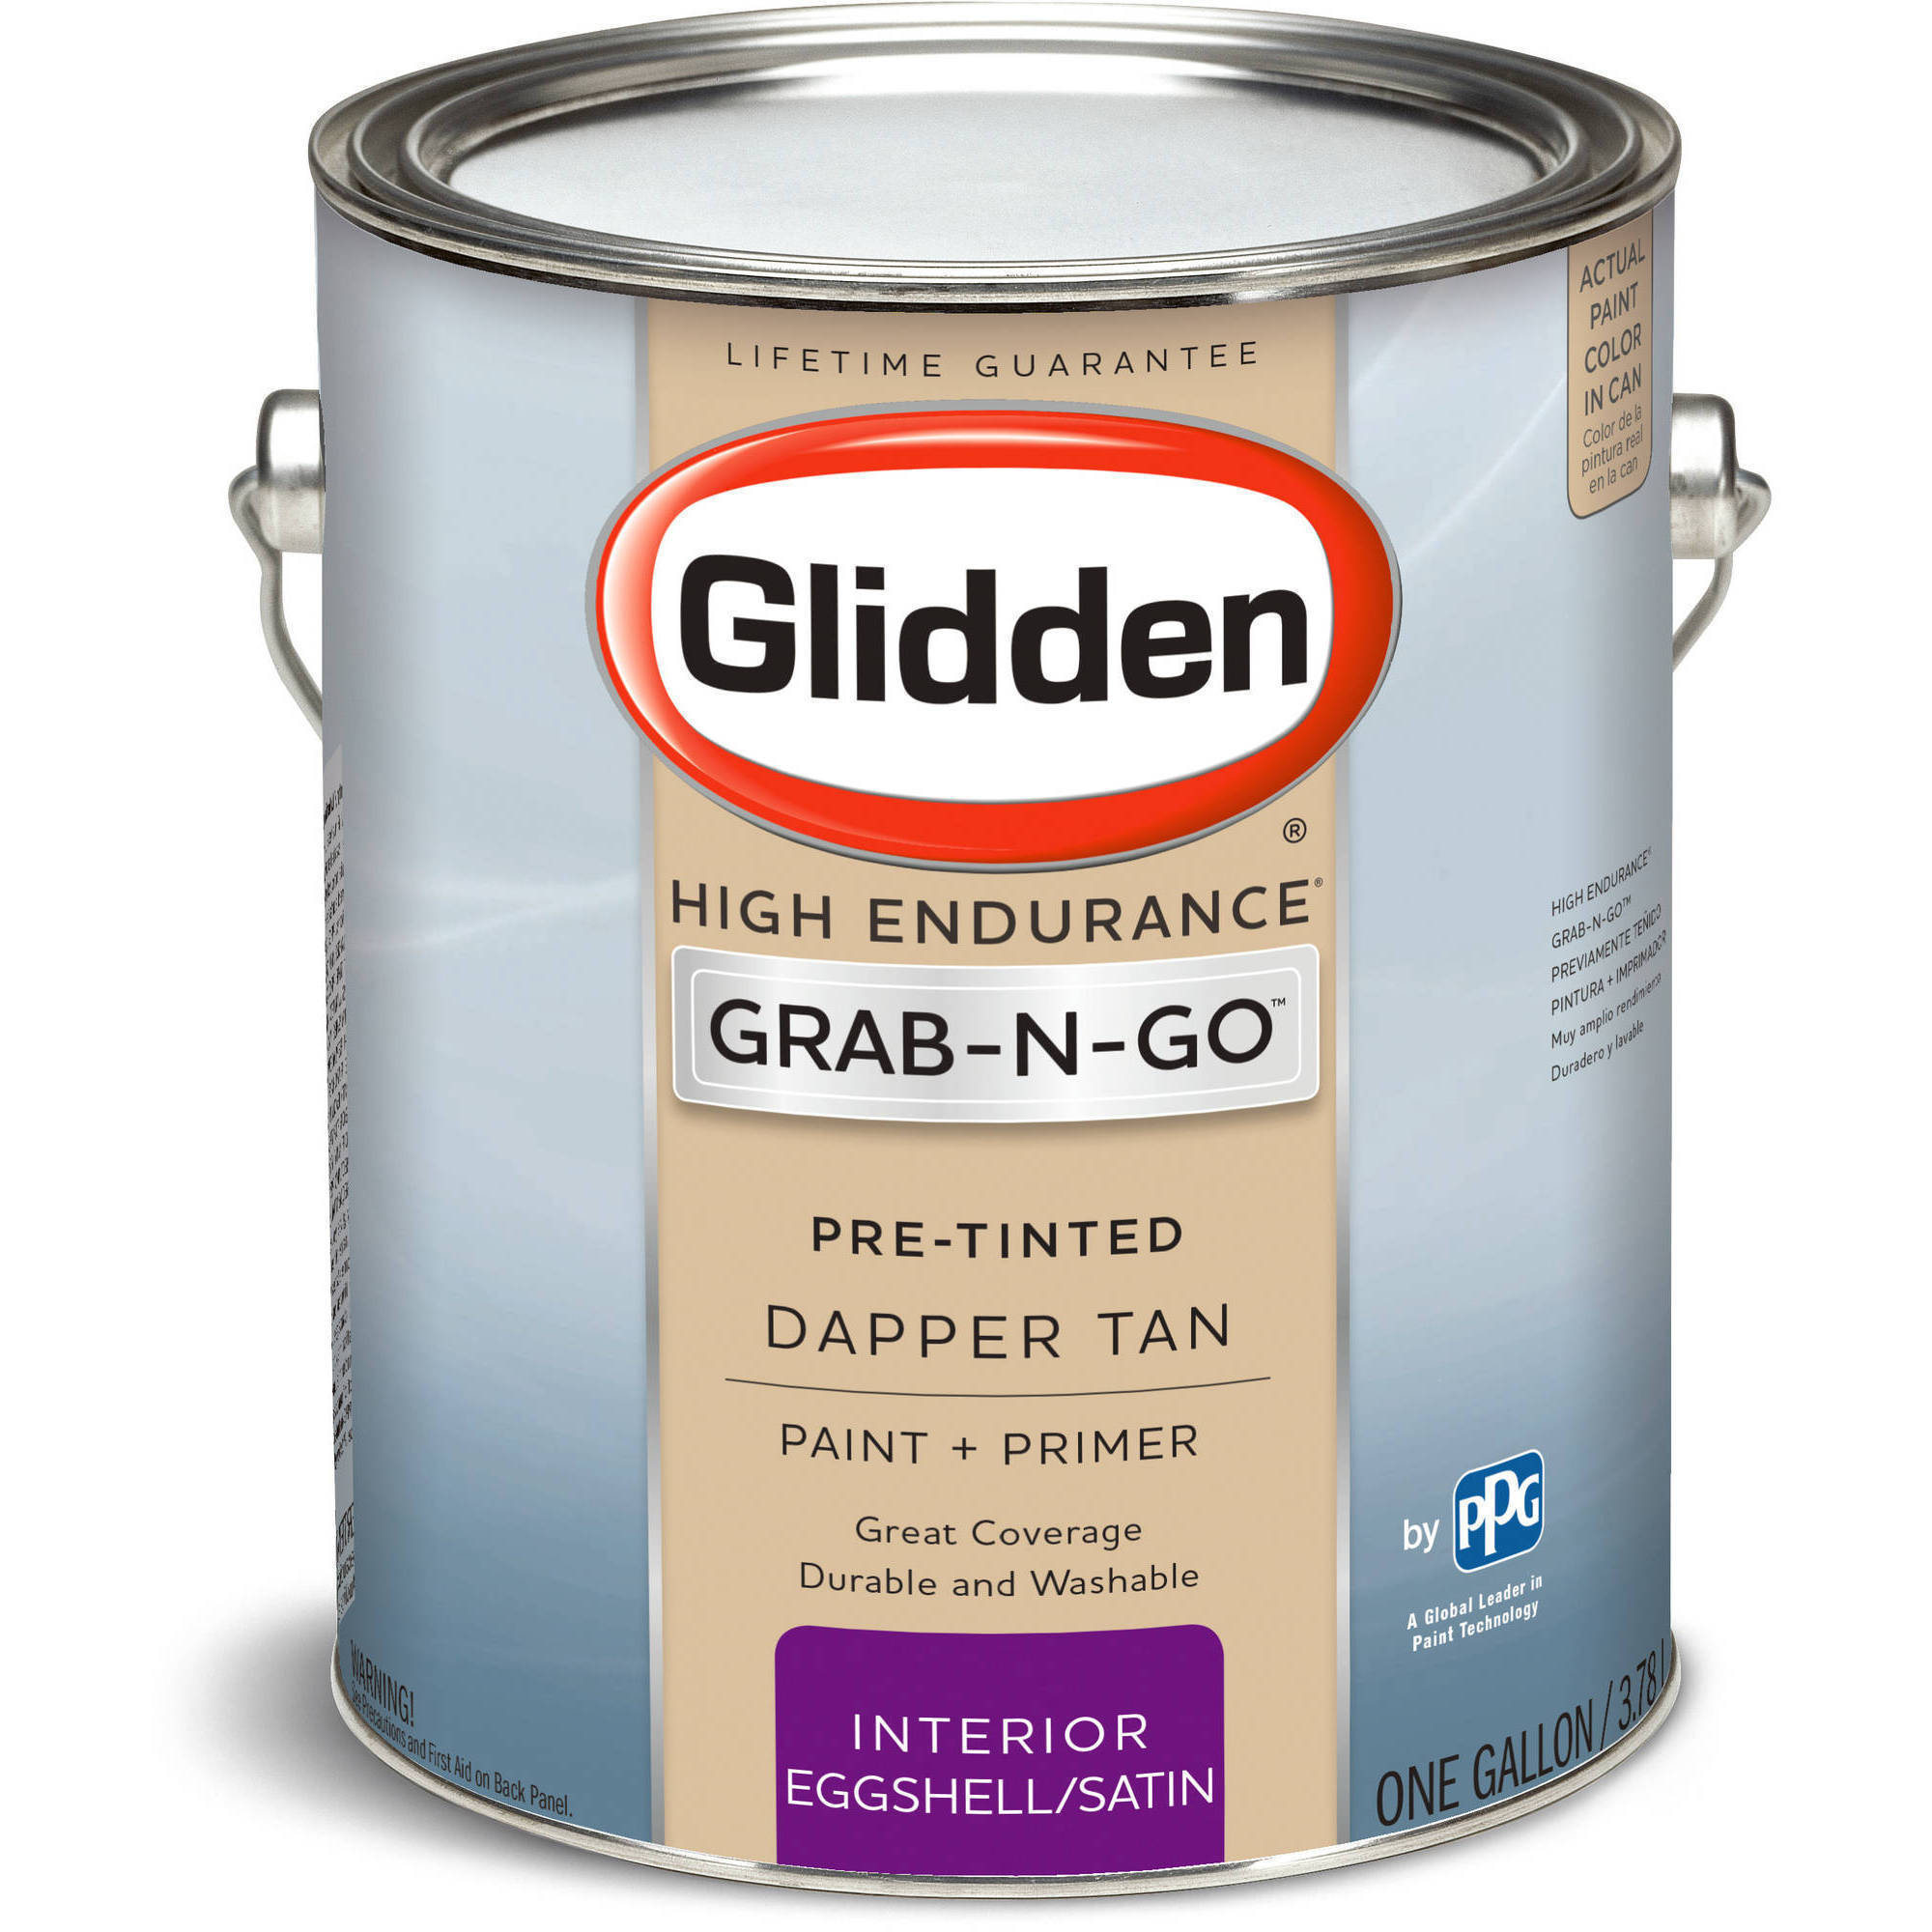 Glidden Pre Mixed Ready To Use, Interior Paint and Primer, Eggshell Finish, Dapper Tan, 1 Gallon